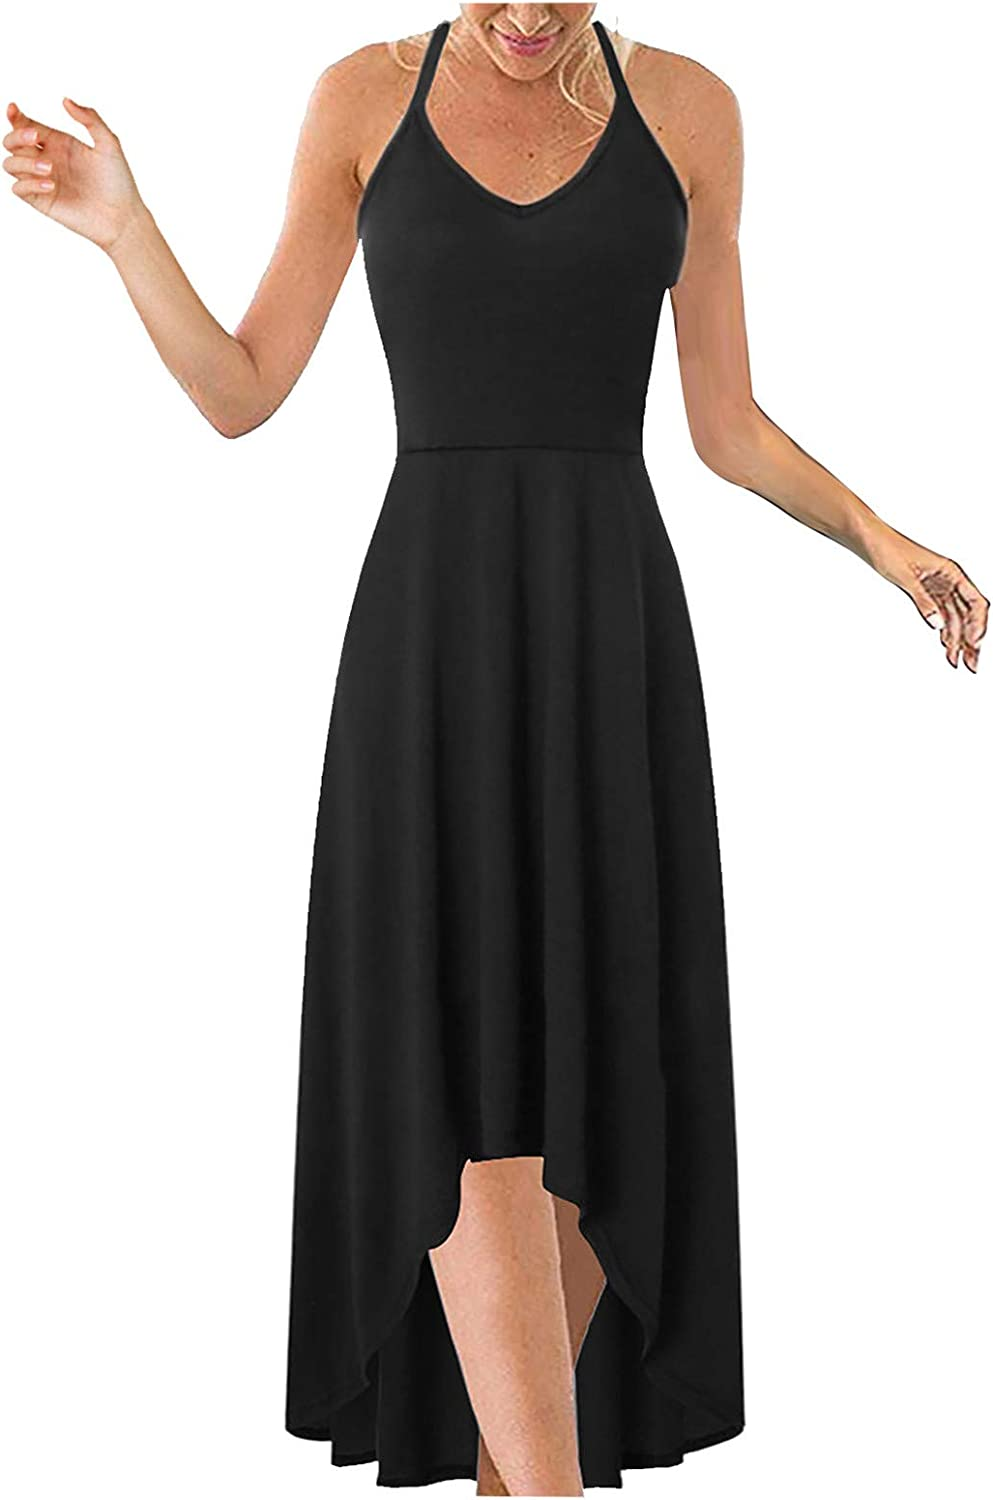 Lovor Women's Plus Size Solid Color V Neck Sleeveless Casual Long Dress Summer Asymmetrical Patchwork Cami Maxi Dresses